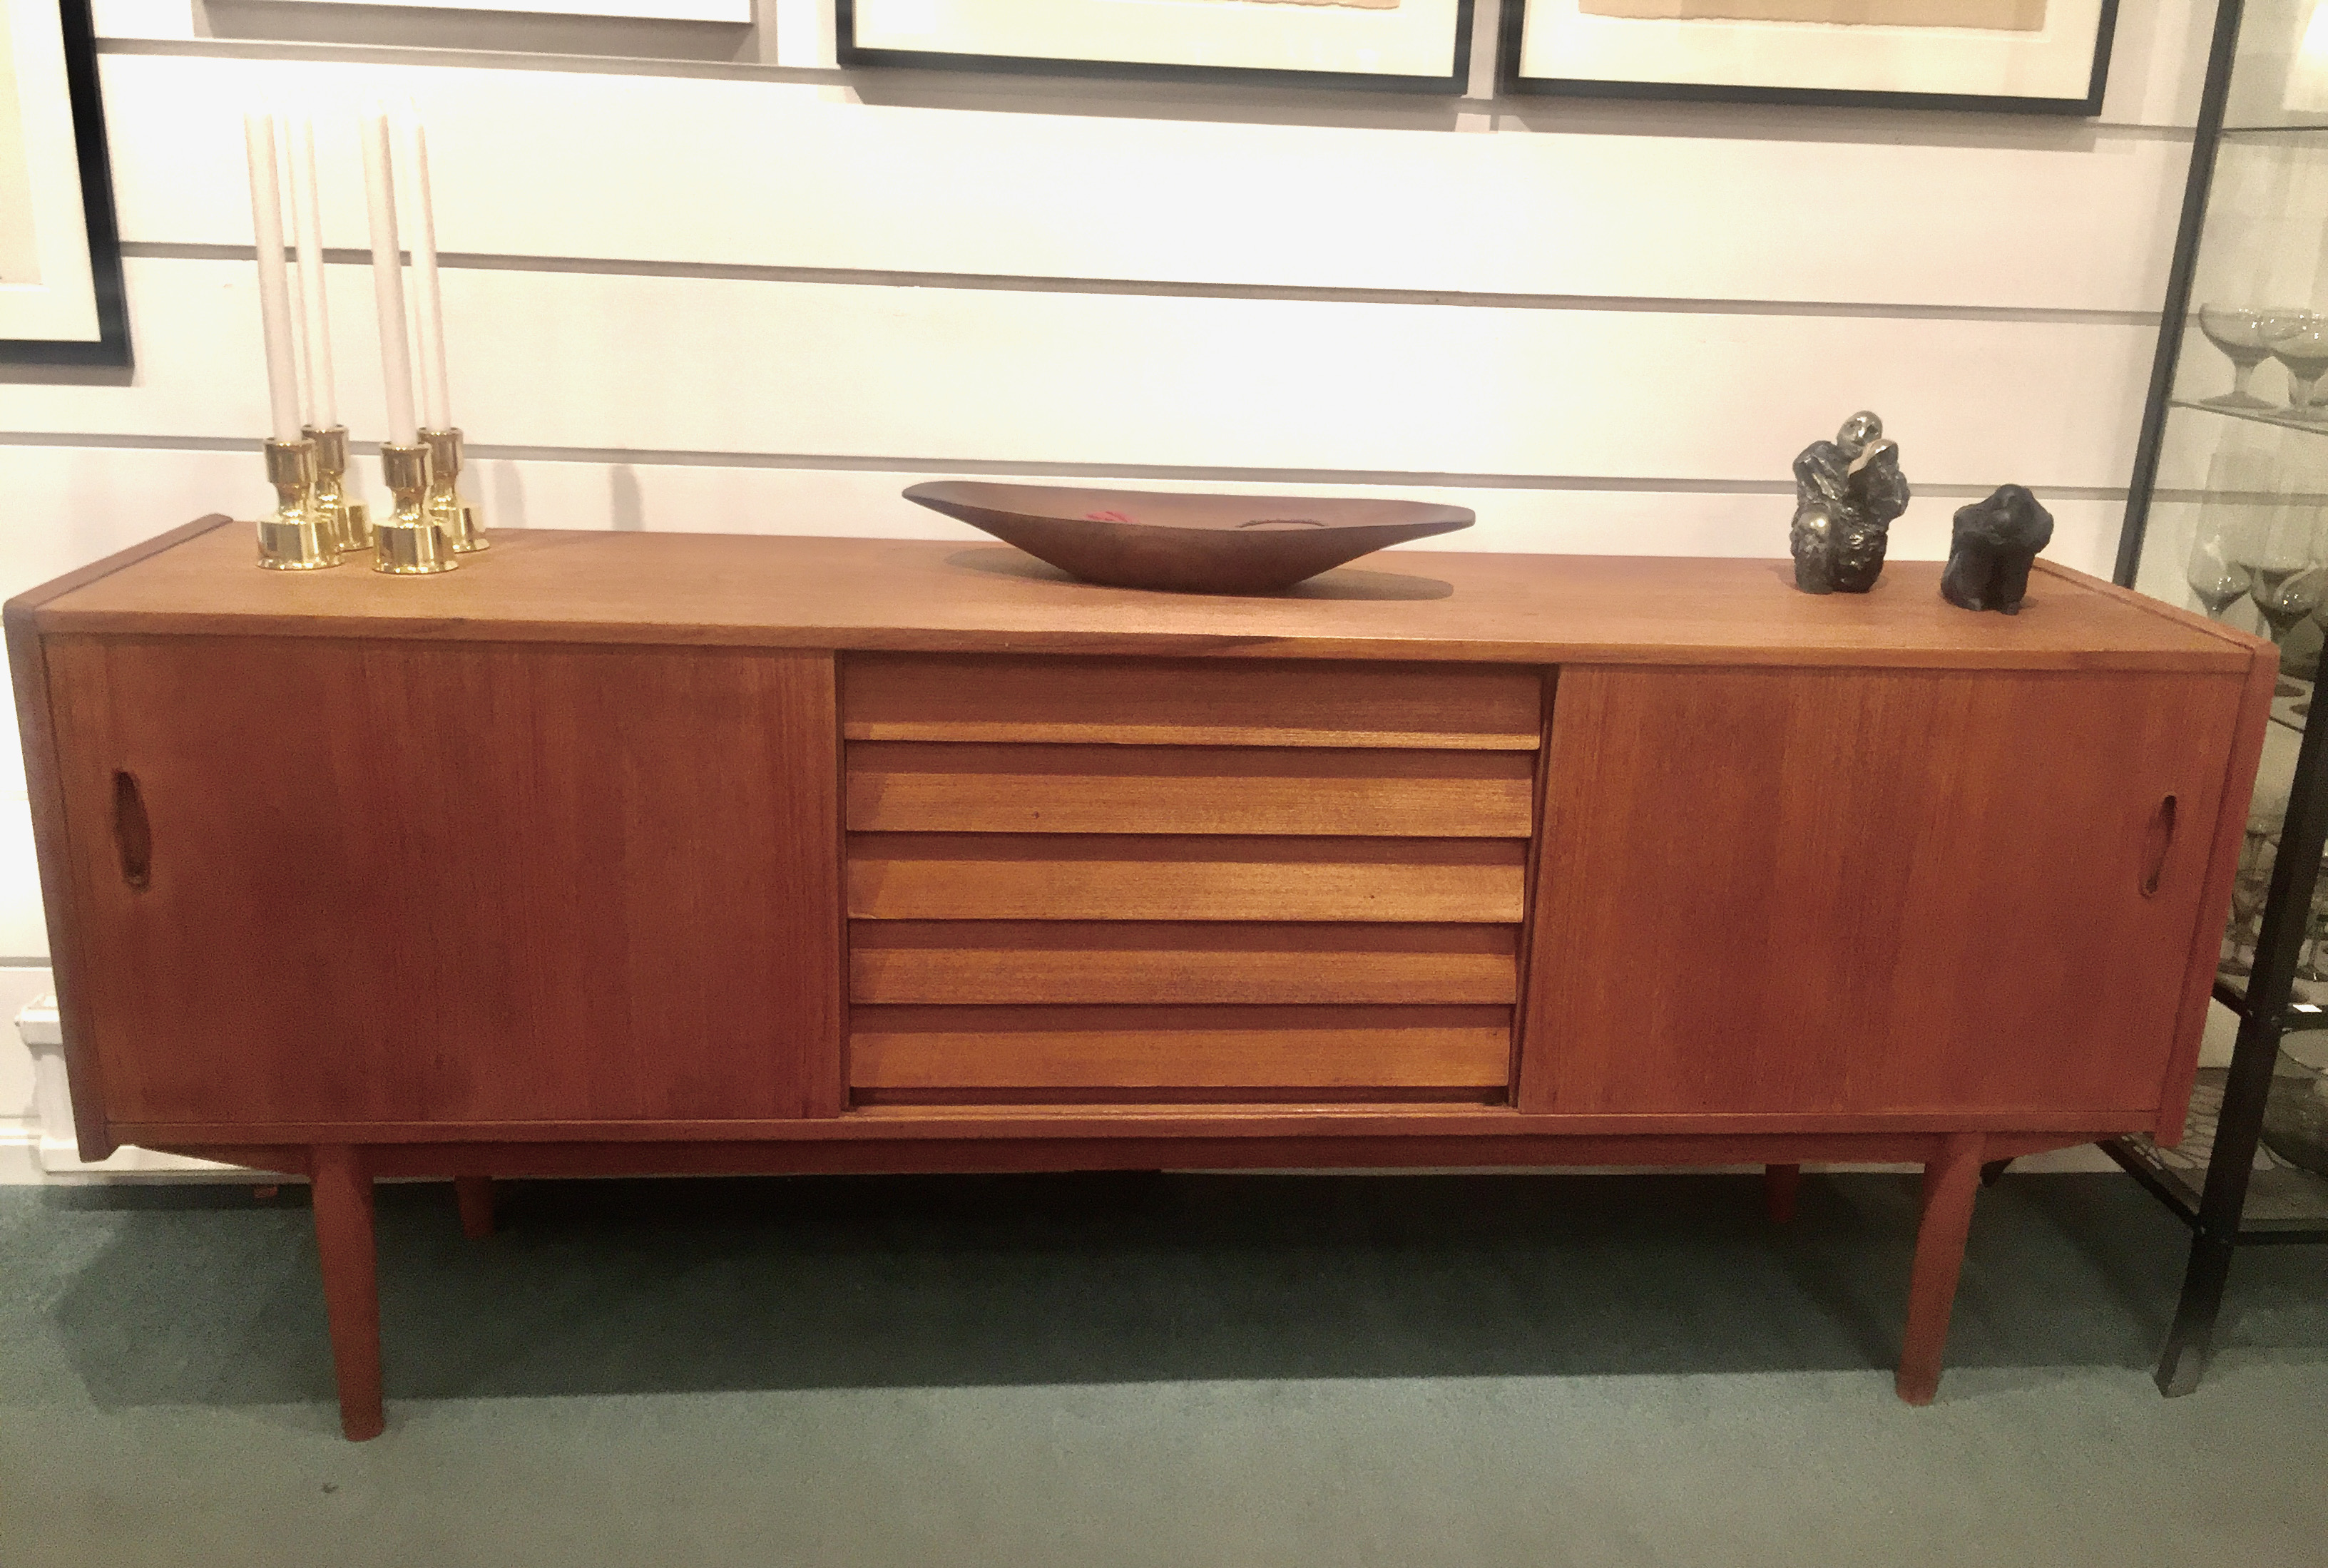 Teak sideboard, Trio, by Nils Jonsson for Troeds